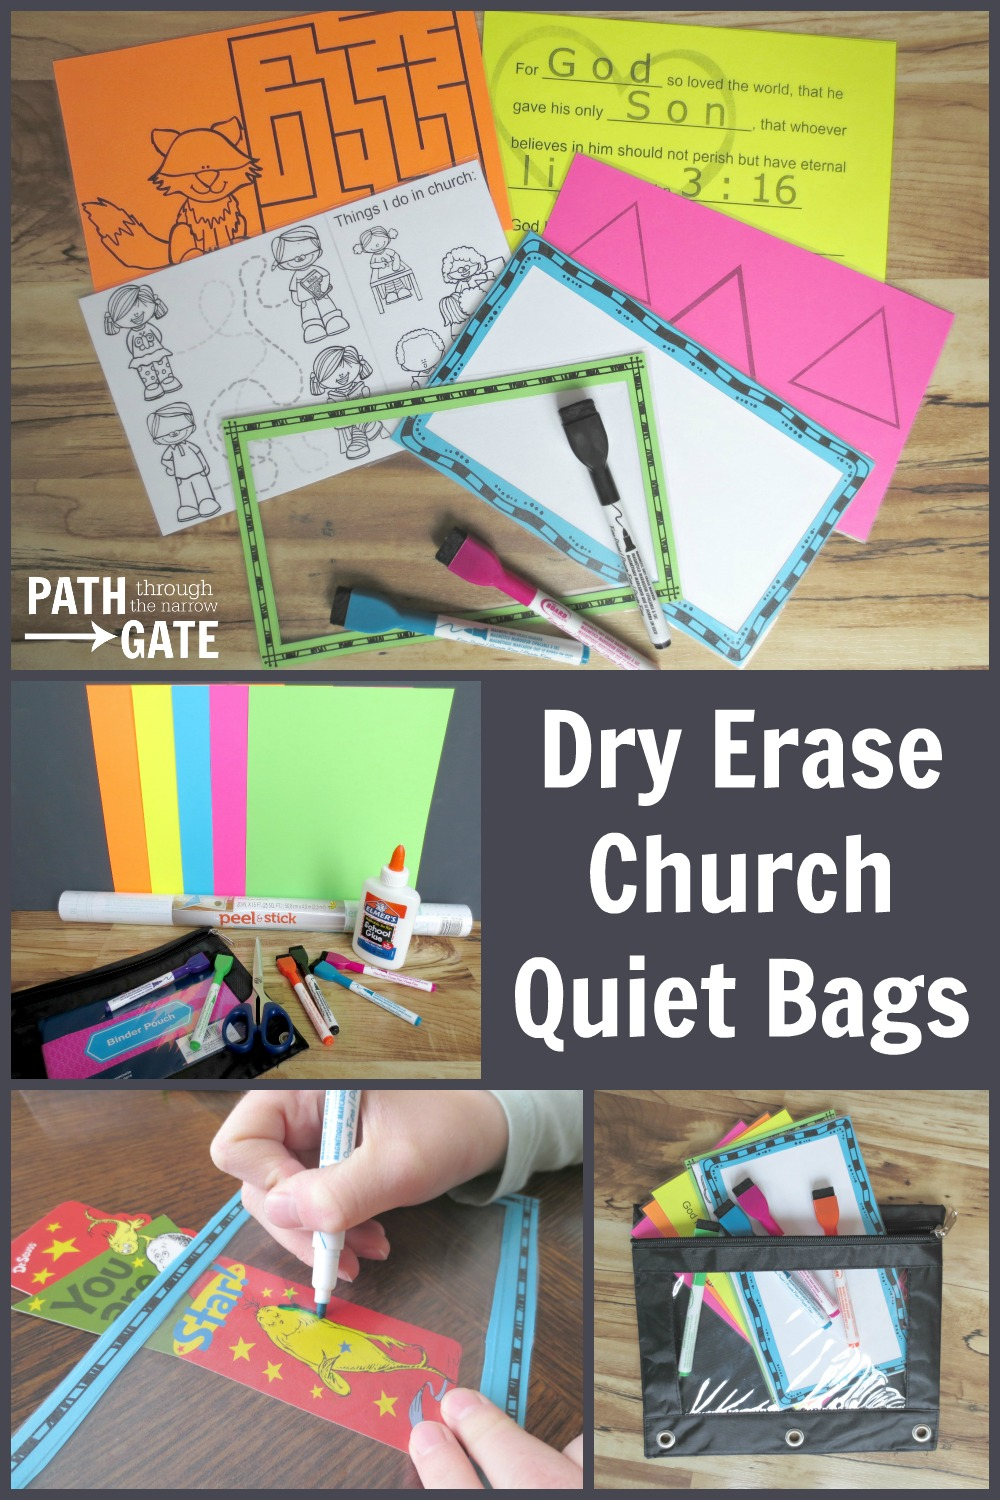 Dry Erase Church Quiet Bag|Path Through the Narrow Gate